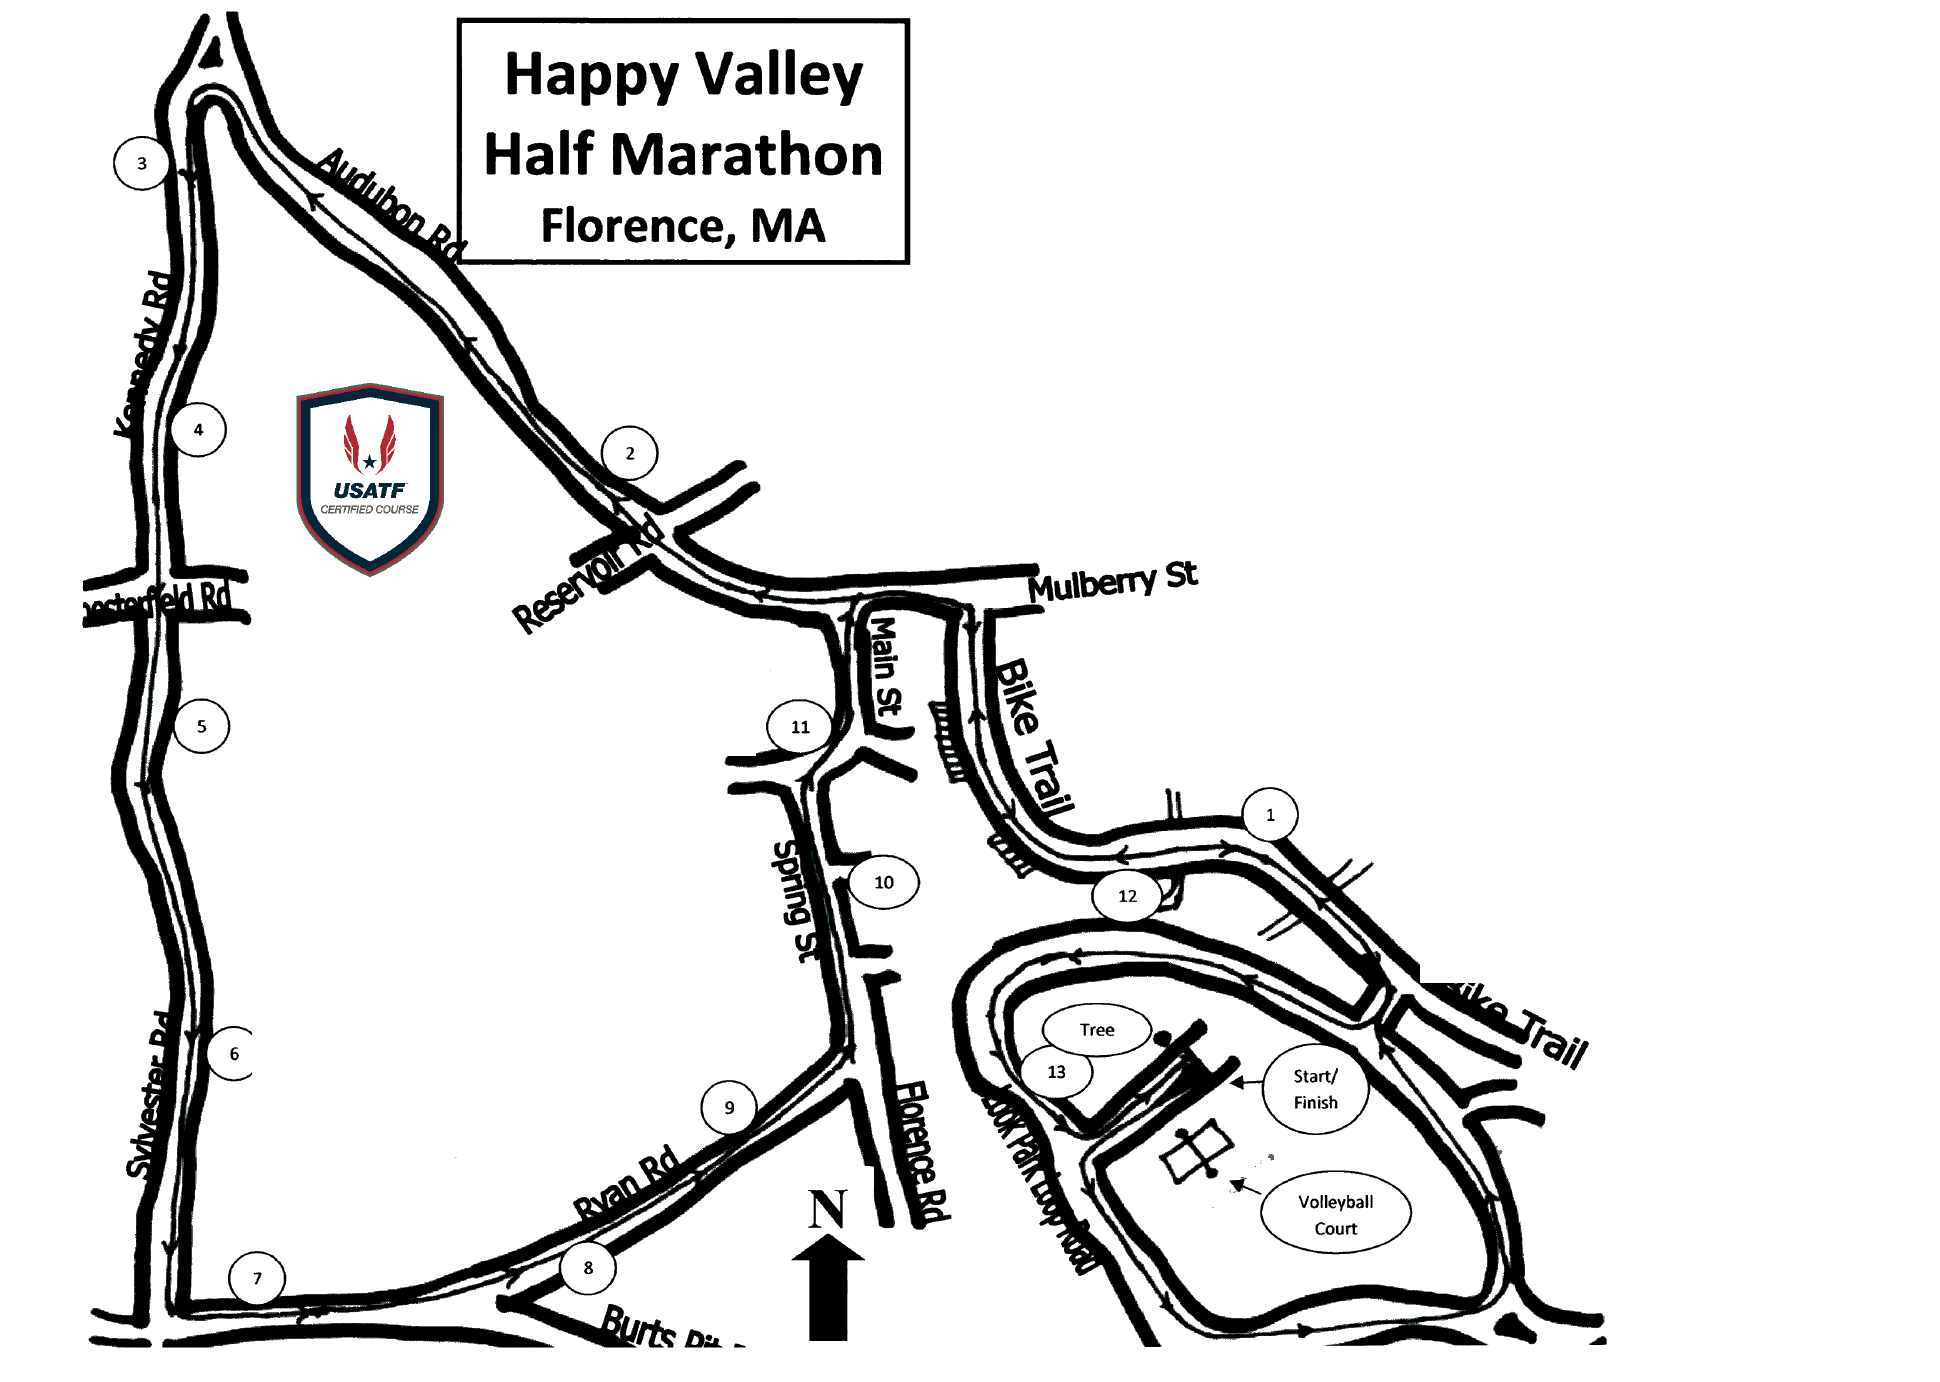 A more detailed course map can be found  here